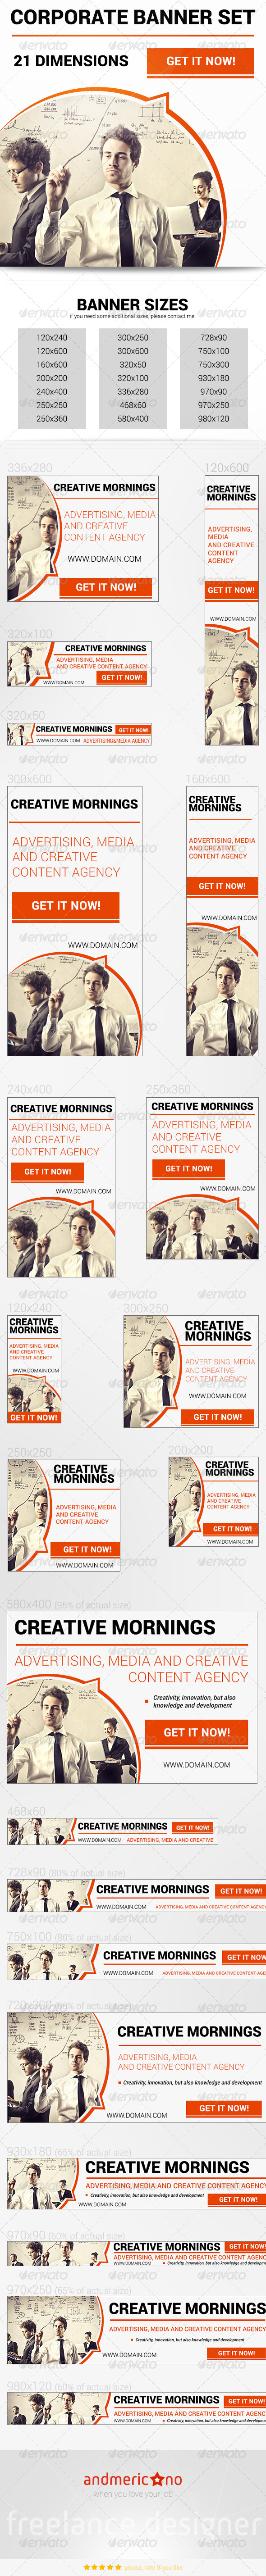 Corporate Banner Set - Banners & Ads Web Elements